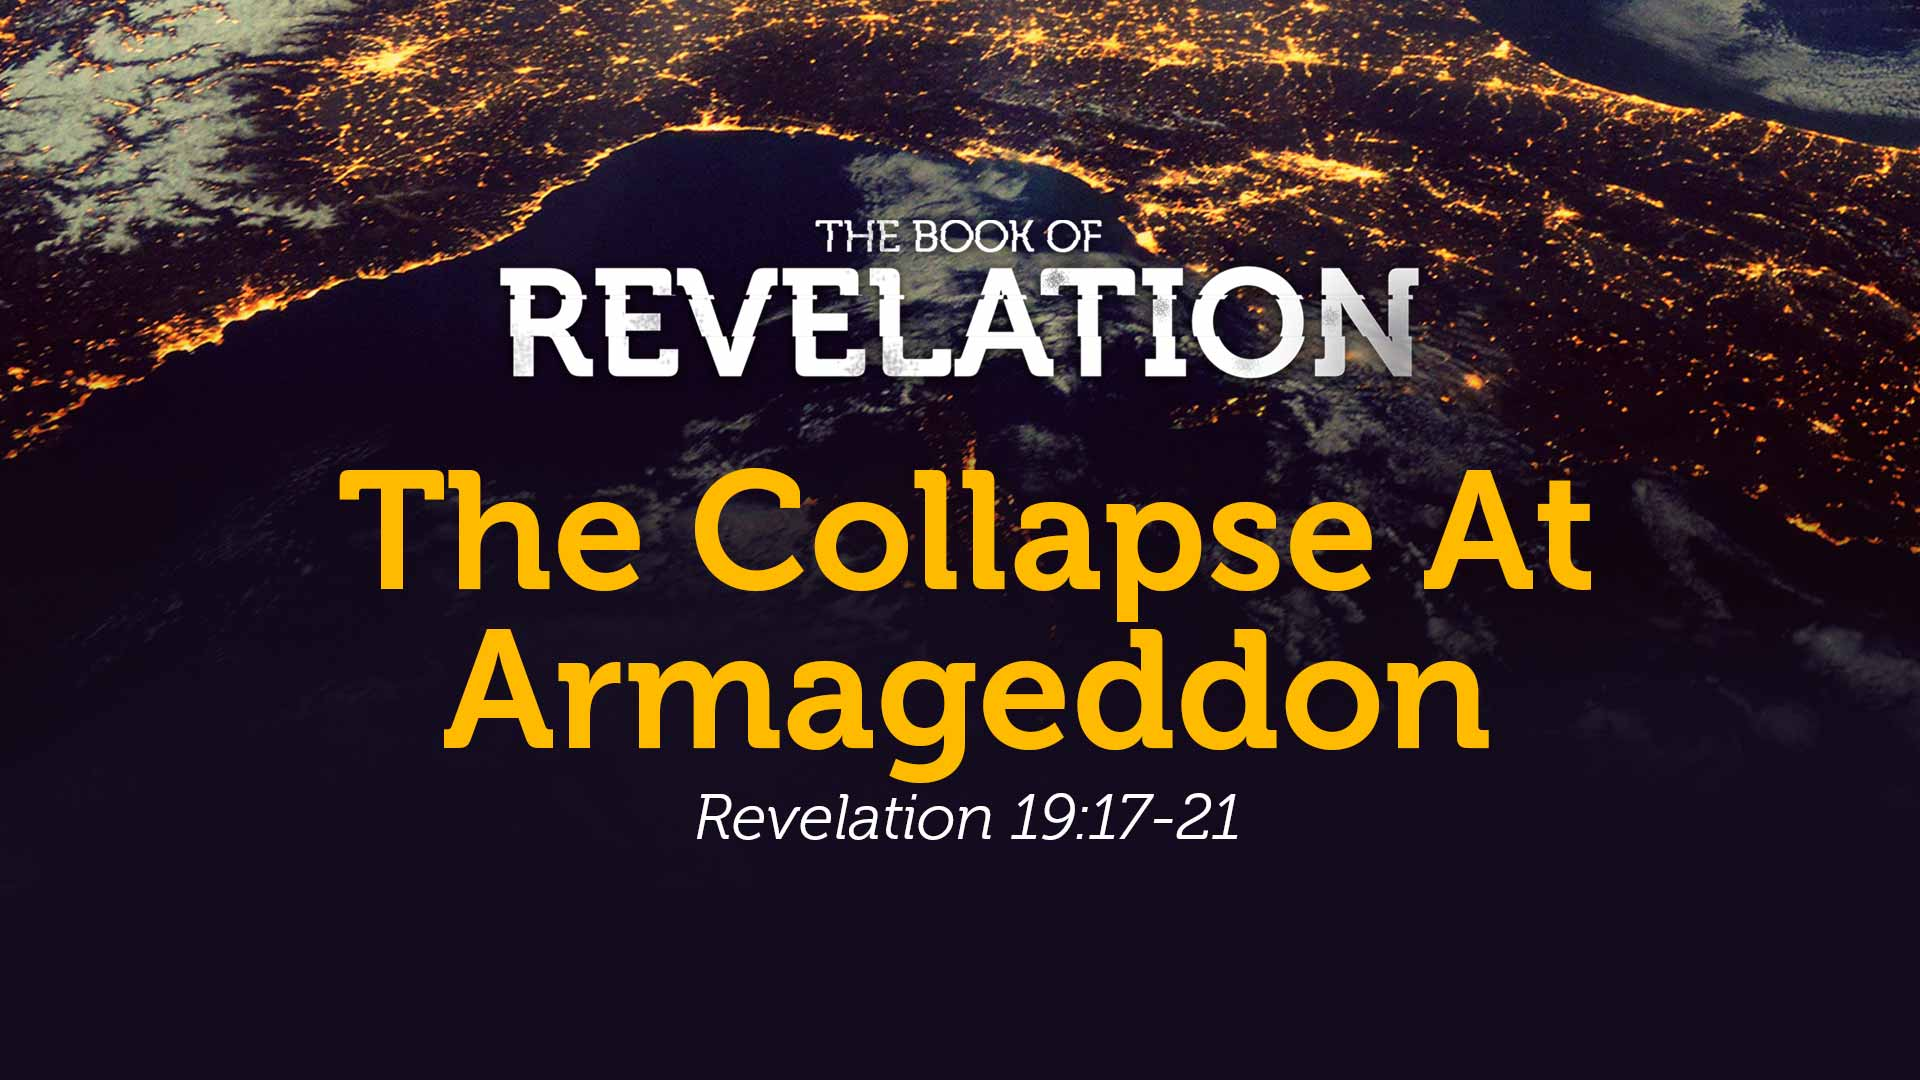 The Collapse At Armageddon